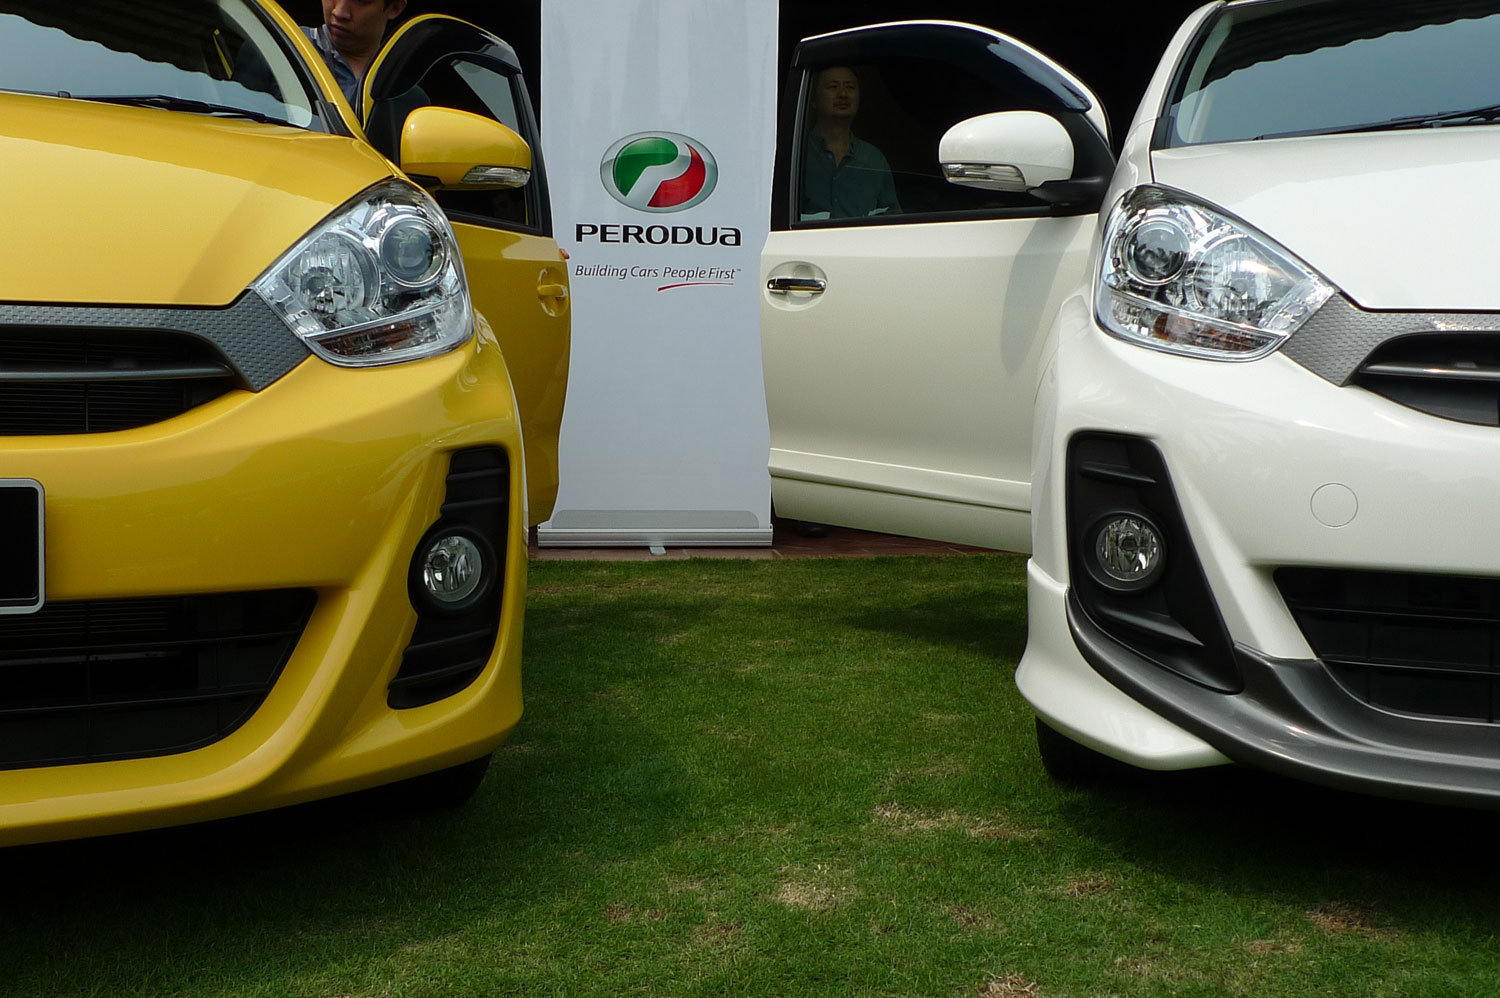 Myvi Se 1.5 >> Perodua Myvi SE 1.5 and Extreme Launch and Test Drive Review Paul Tan - Image 68825